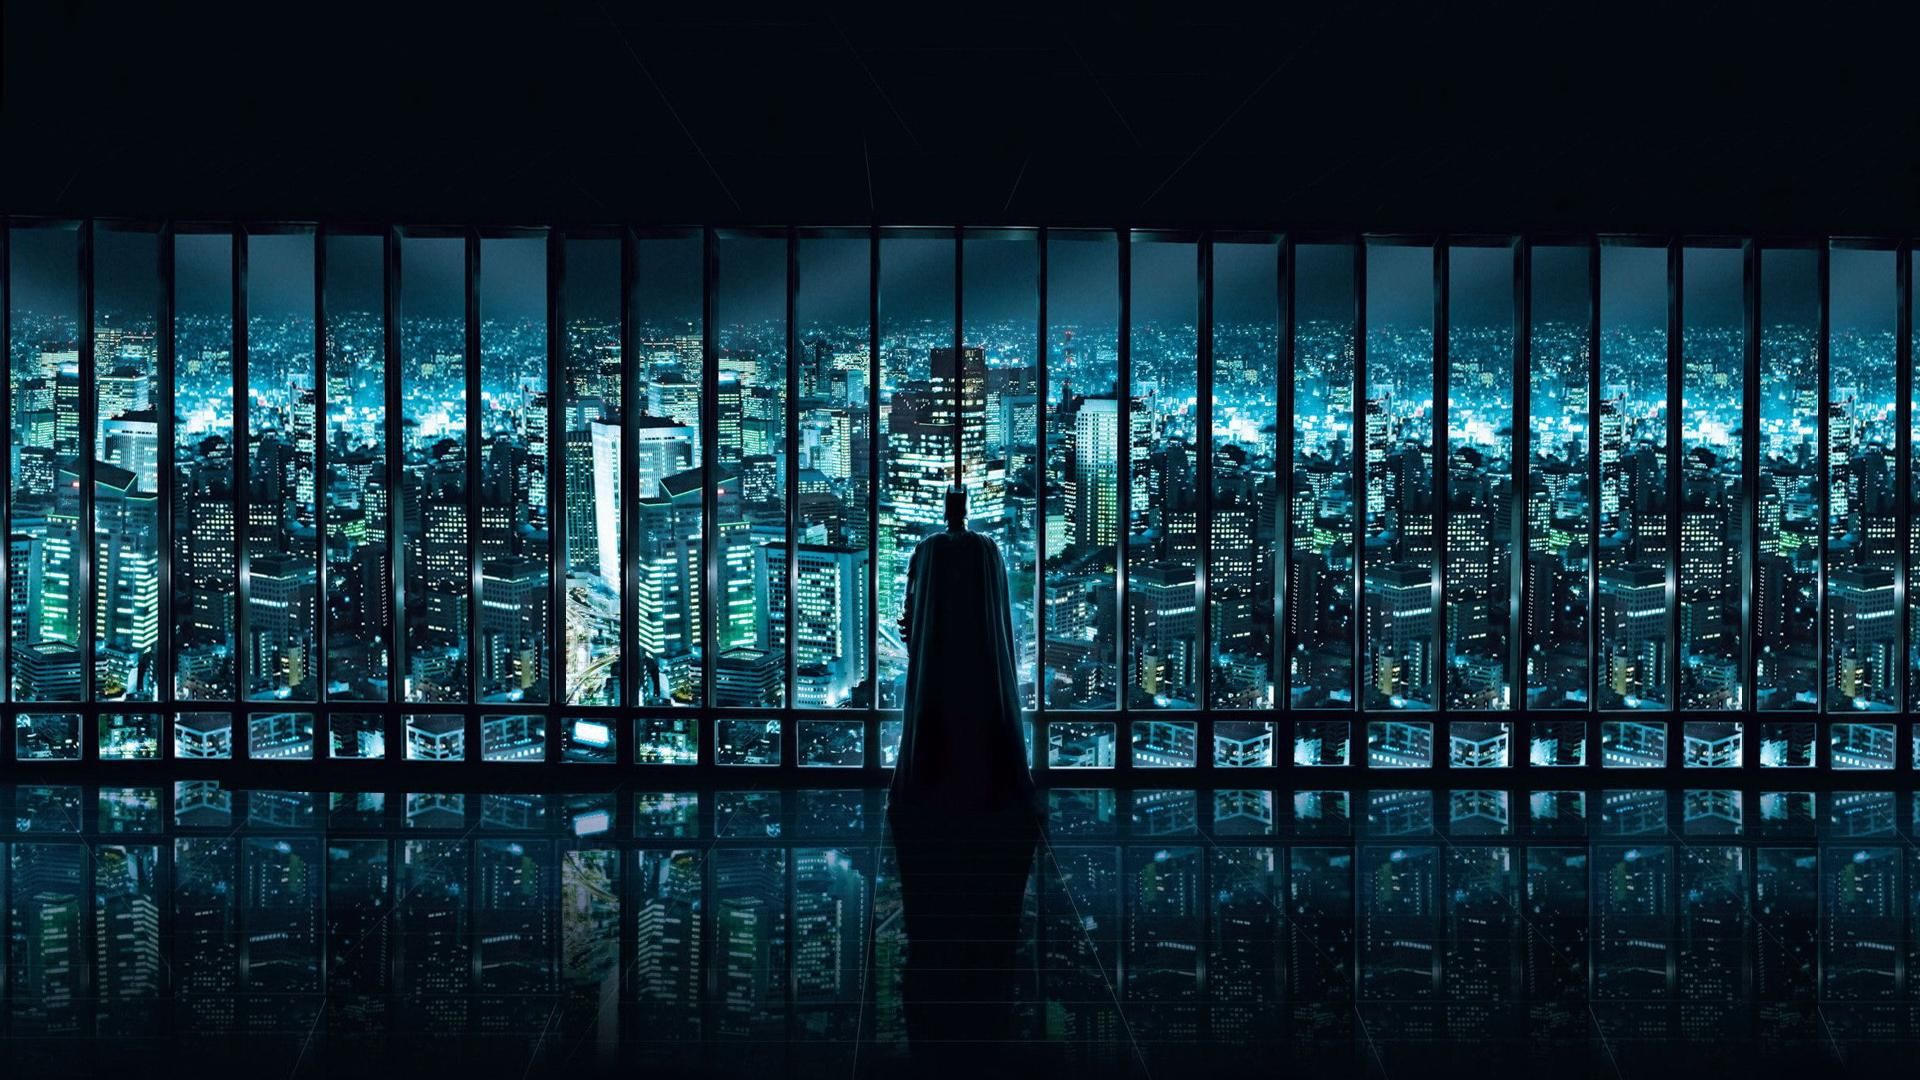 batman wallpaper 1080p - Google Search